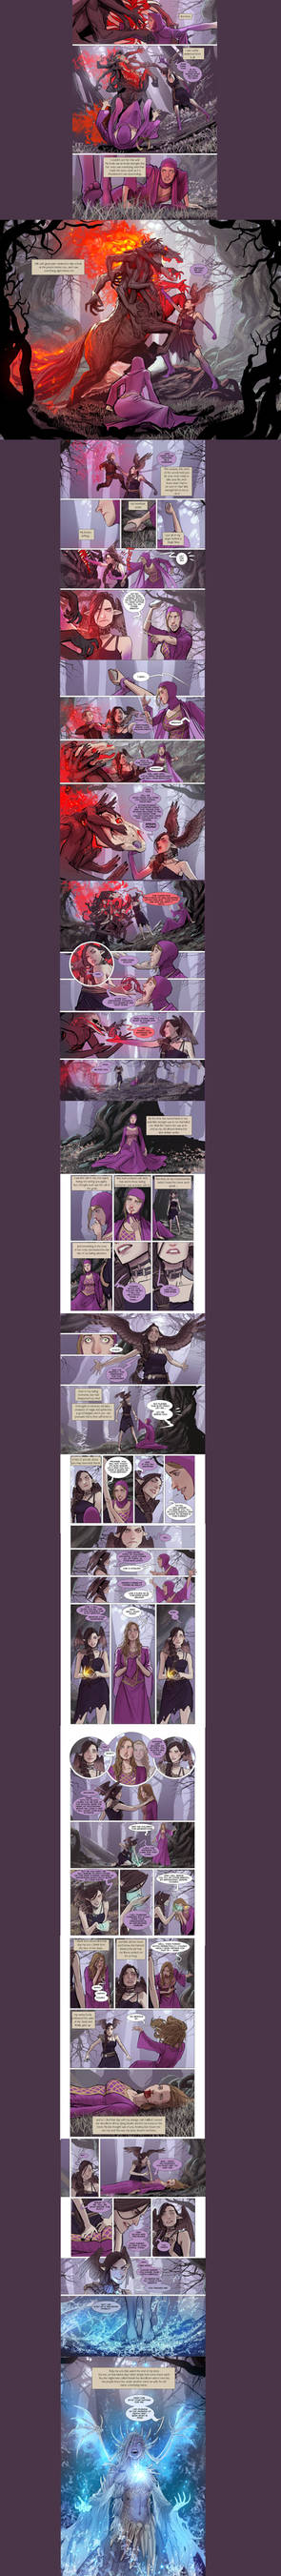 The Queen And the Woodborn episode 4